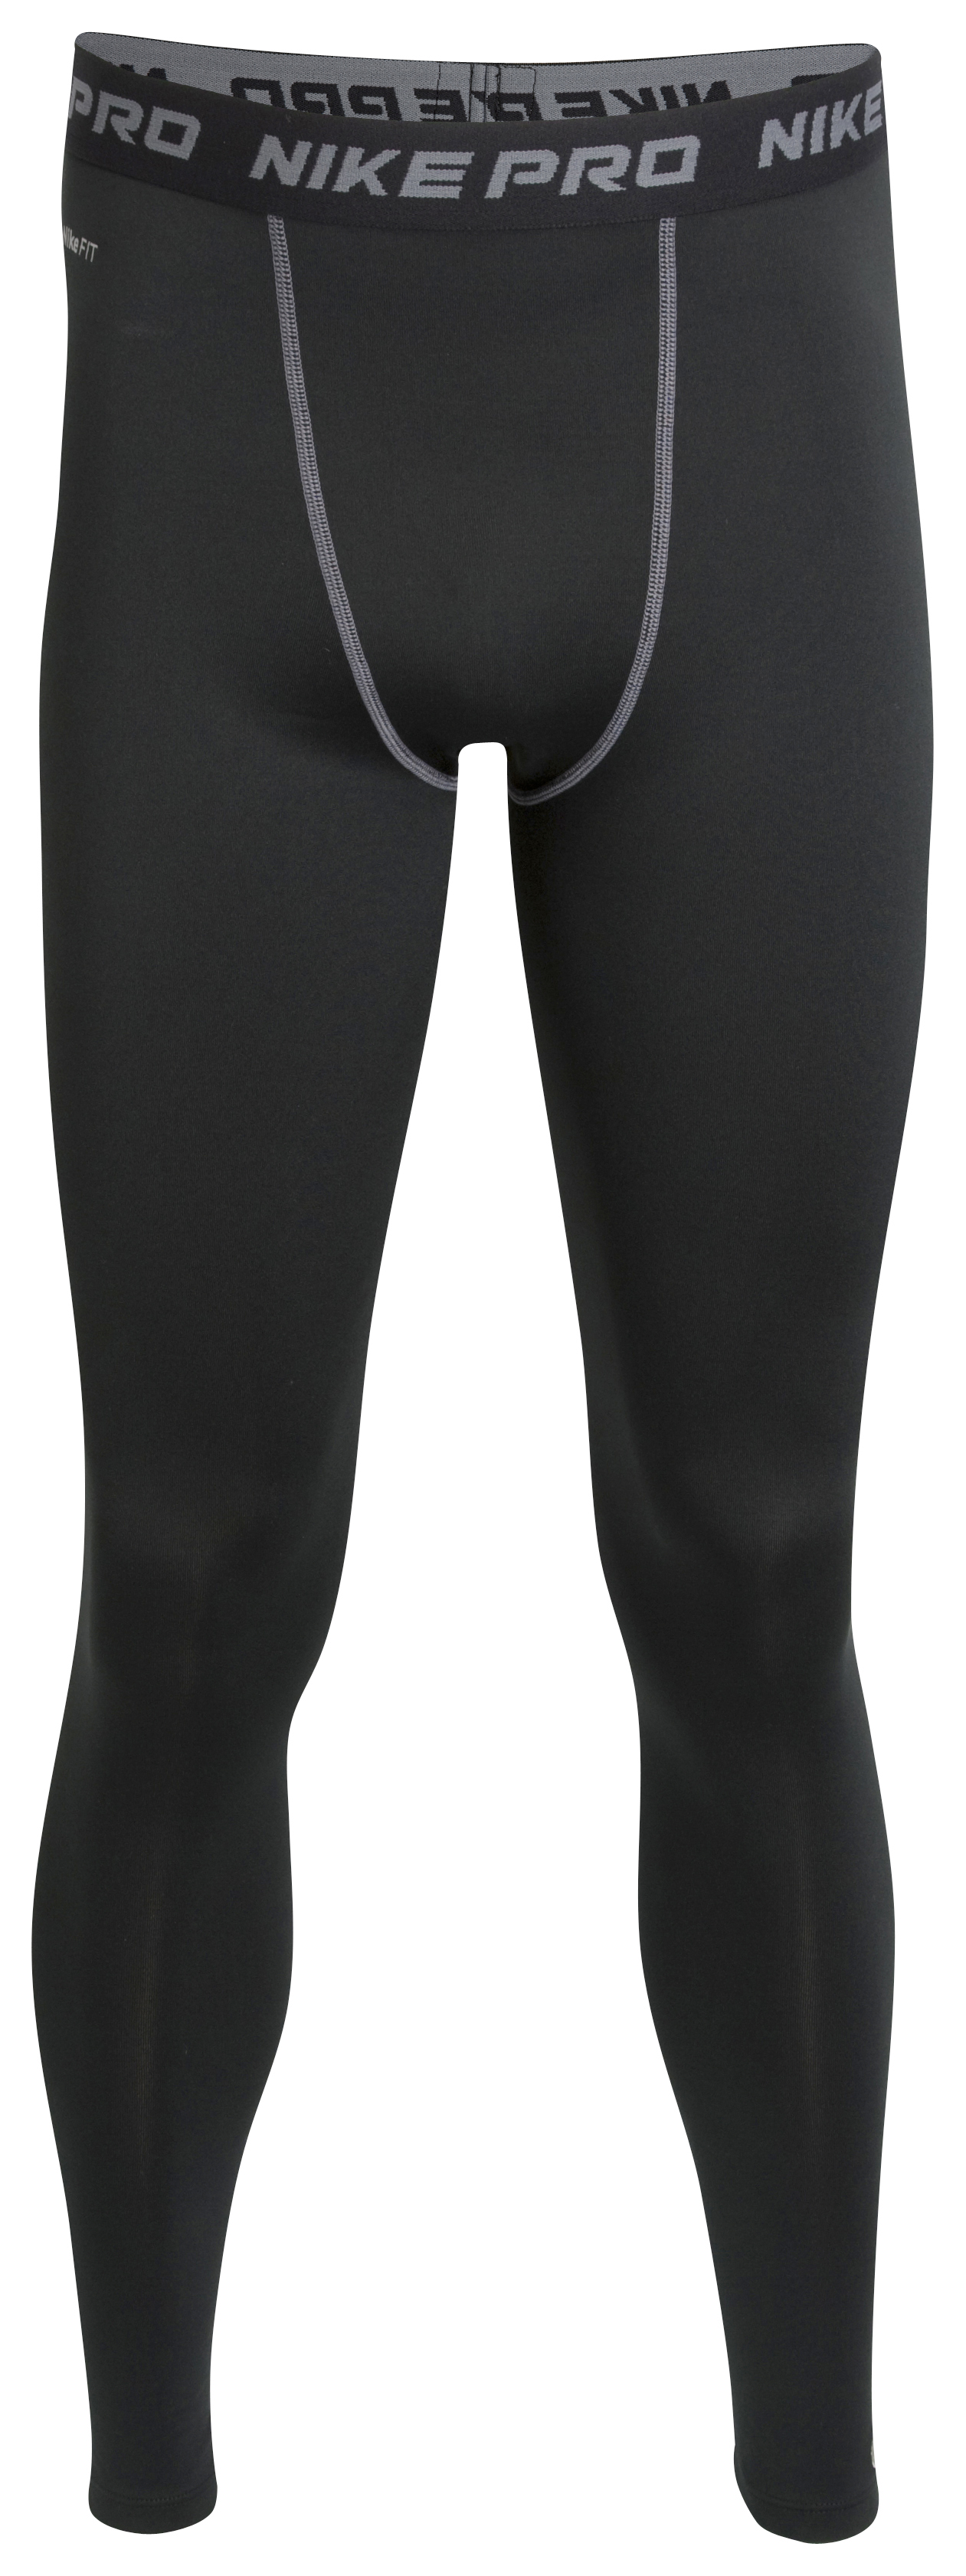 Nike Pro Core Cold Weather Baselayer Tights - Black/Grey